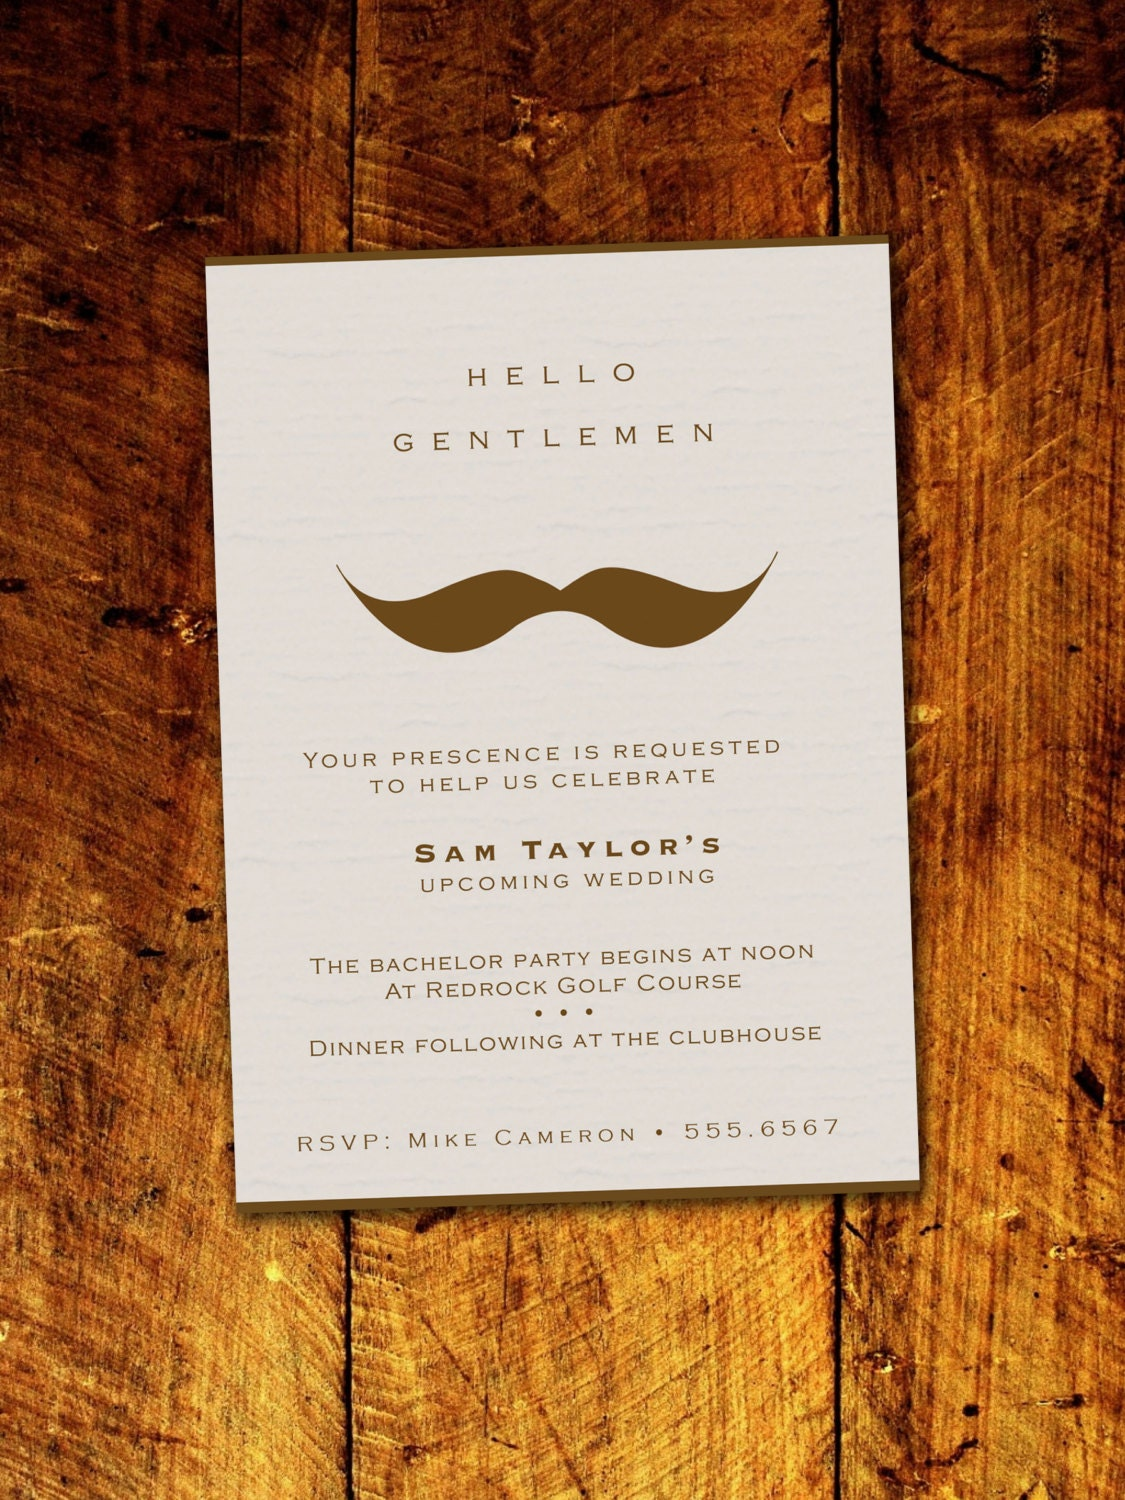 Gentlemans moustache bachelor party invitations digital zoom monicamarmolfo Choice Image